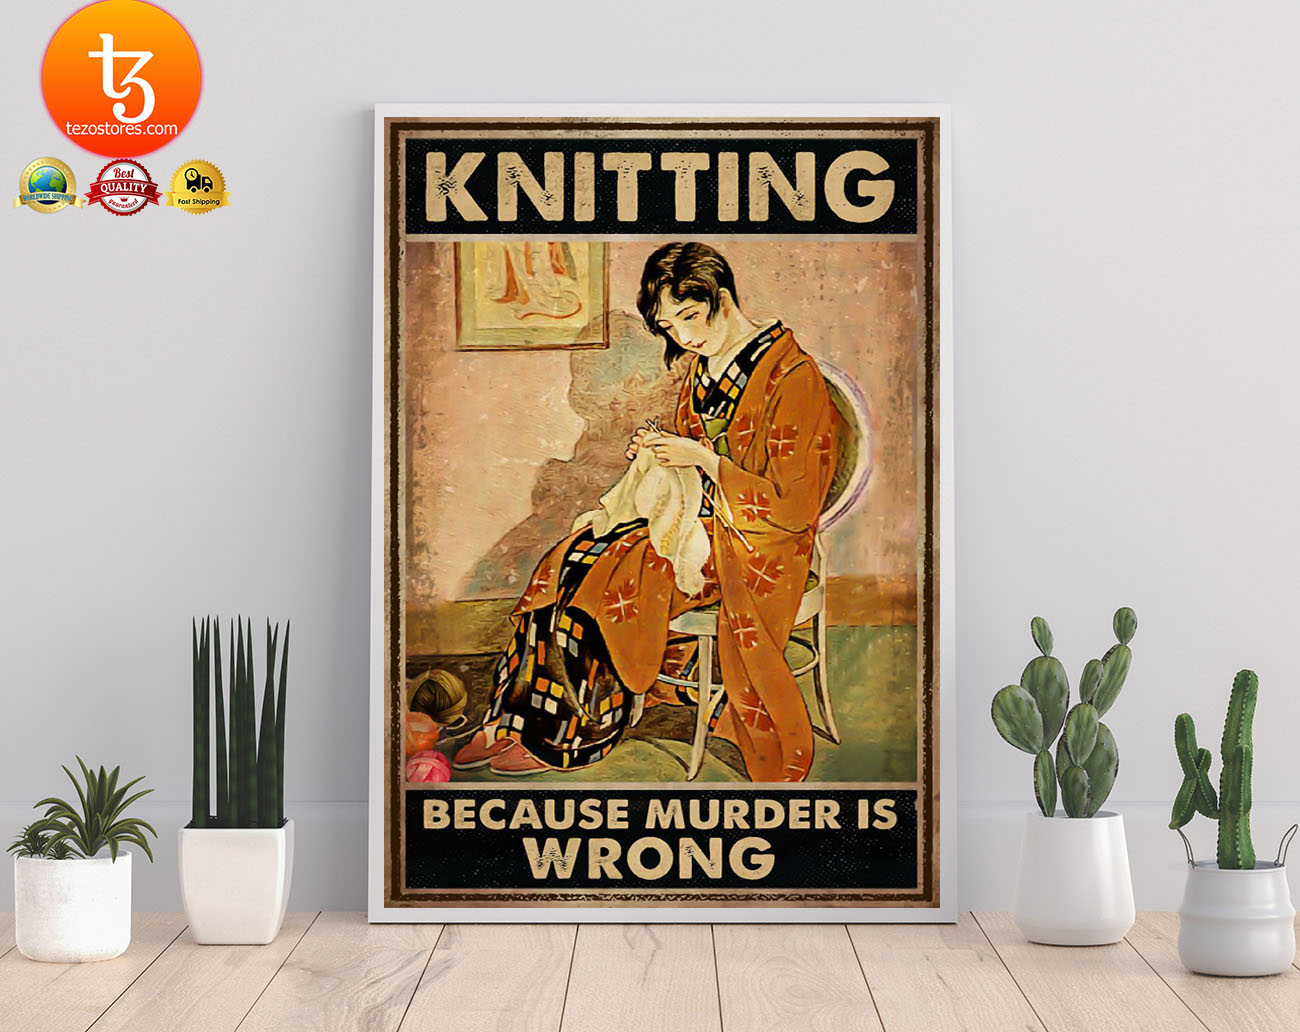 Knitting because murder is wrong poster 3